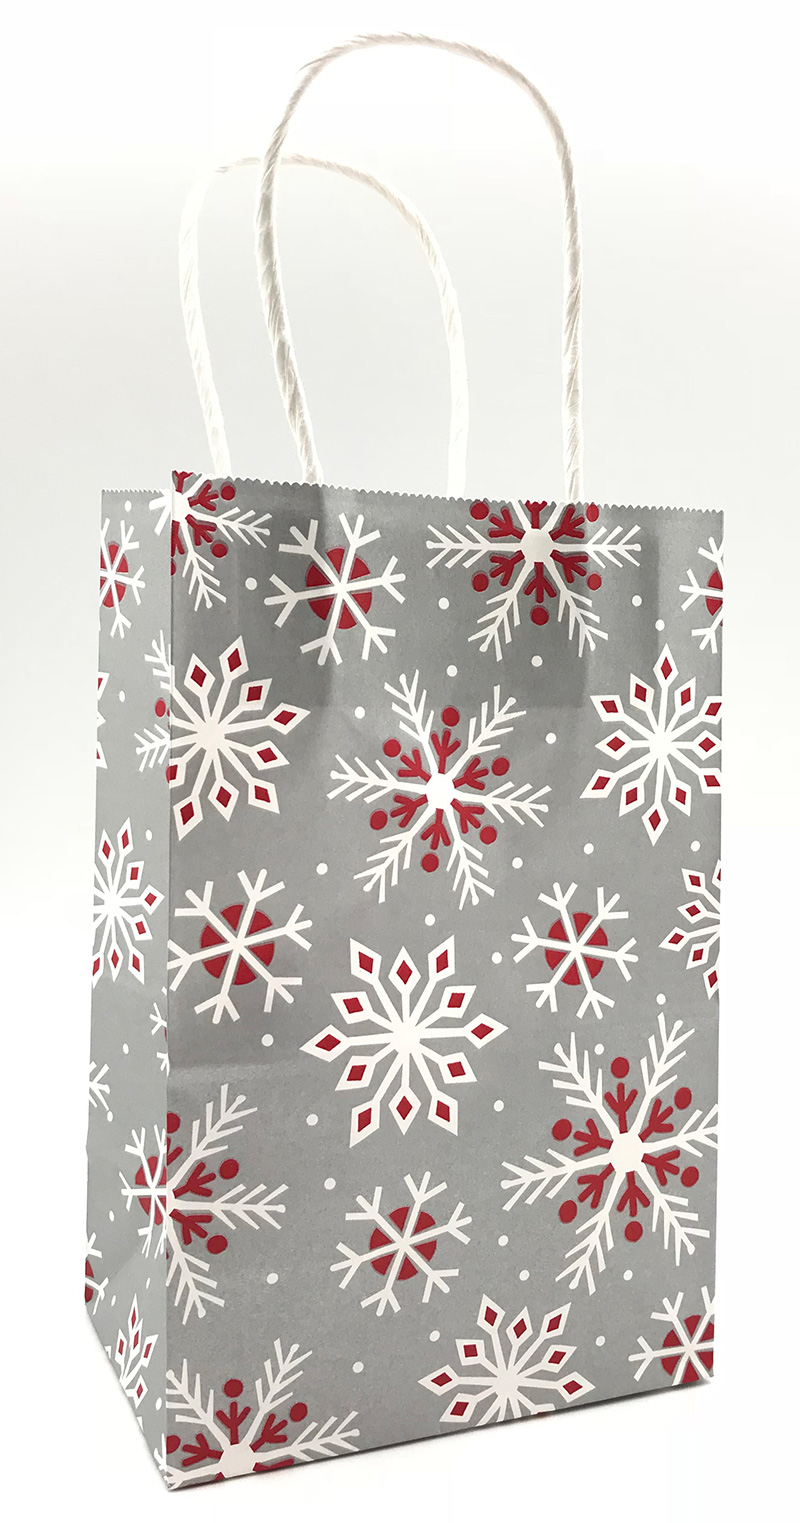 Metallic Red Snowflakes on Silver Shopping Bags